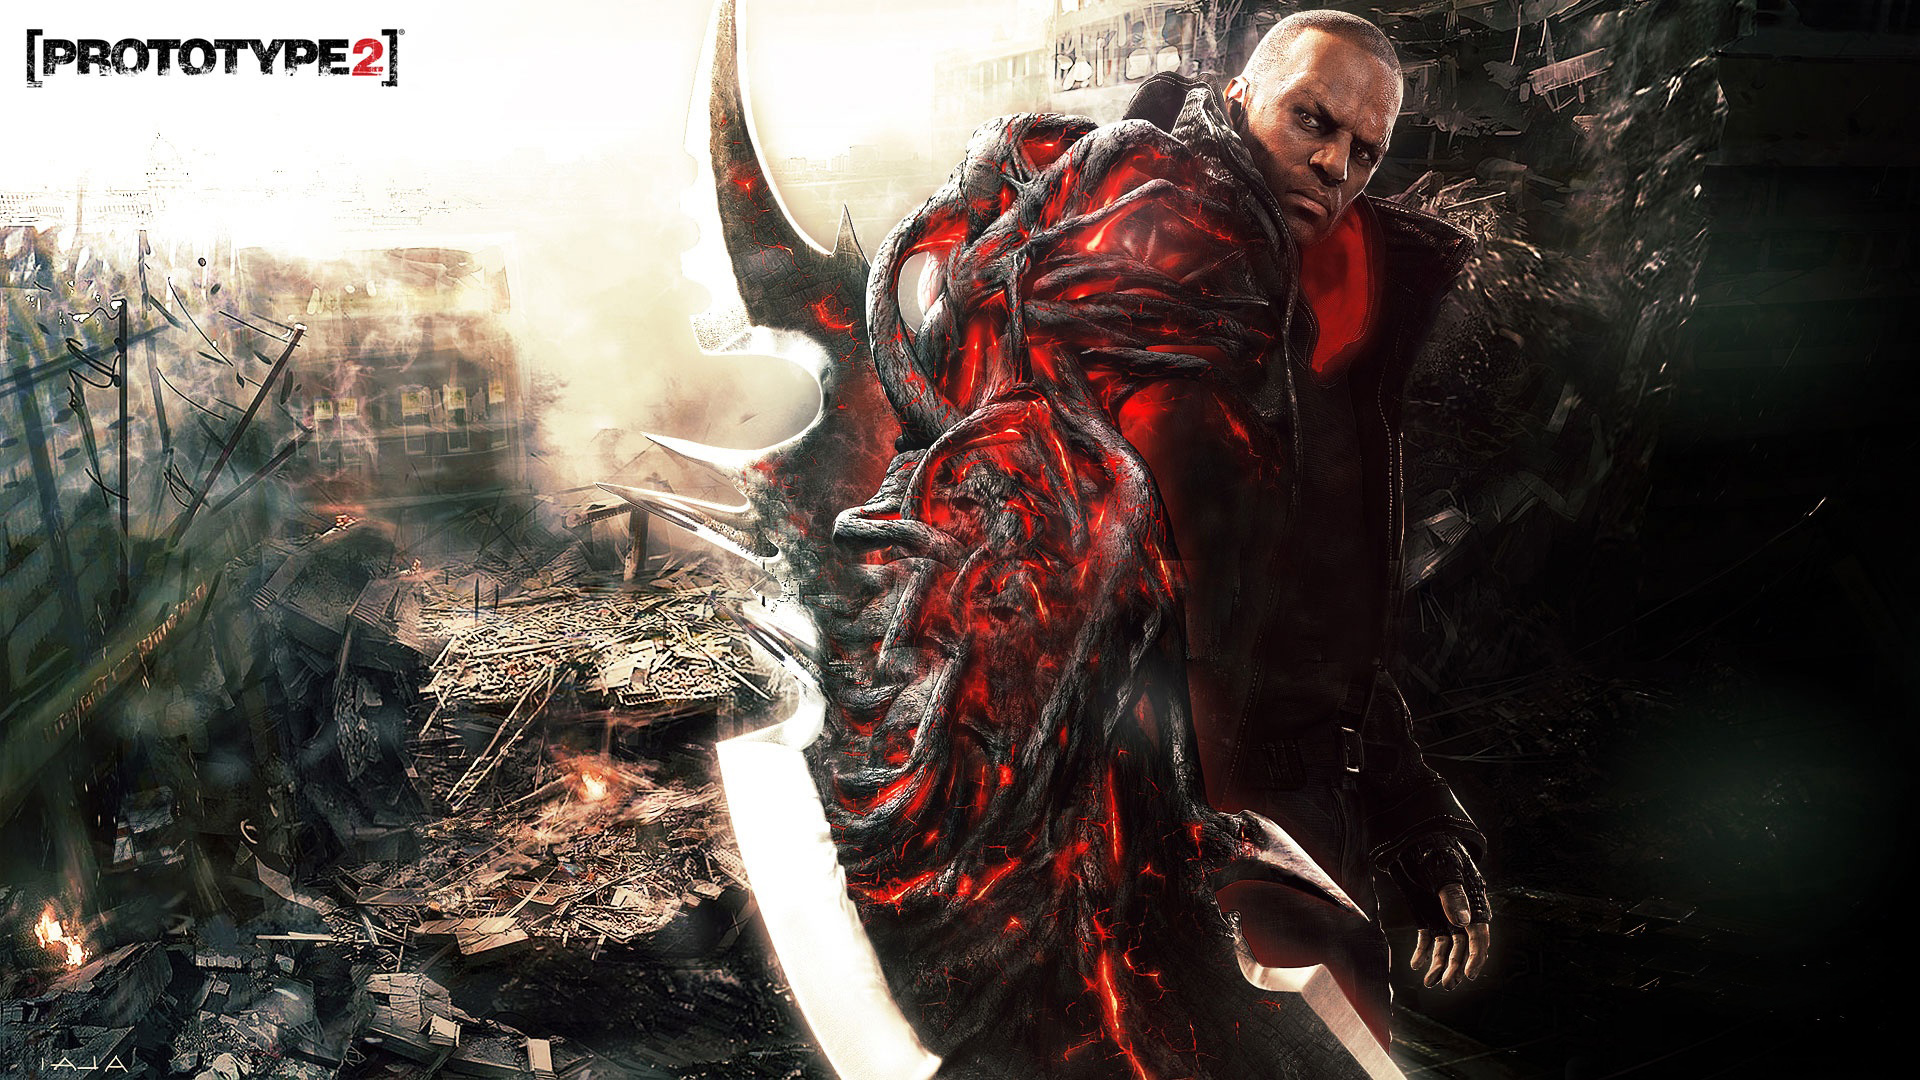 Prototype 2 Game Wallpapers HD Wallpapers 1920x1080